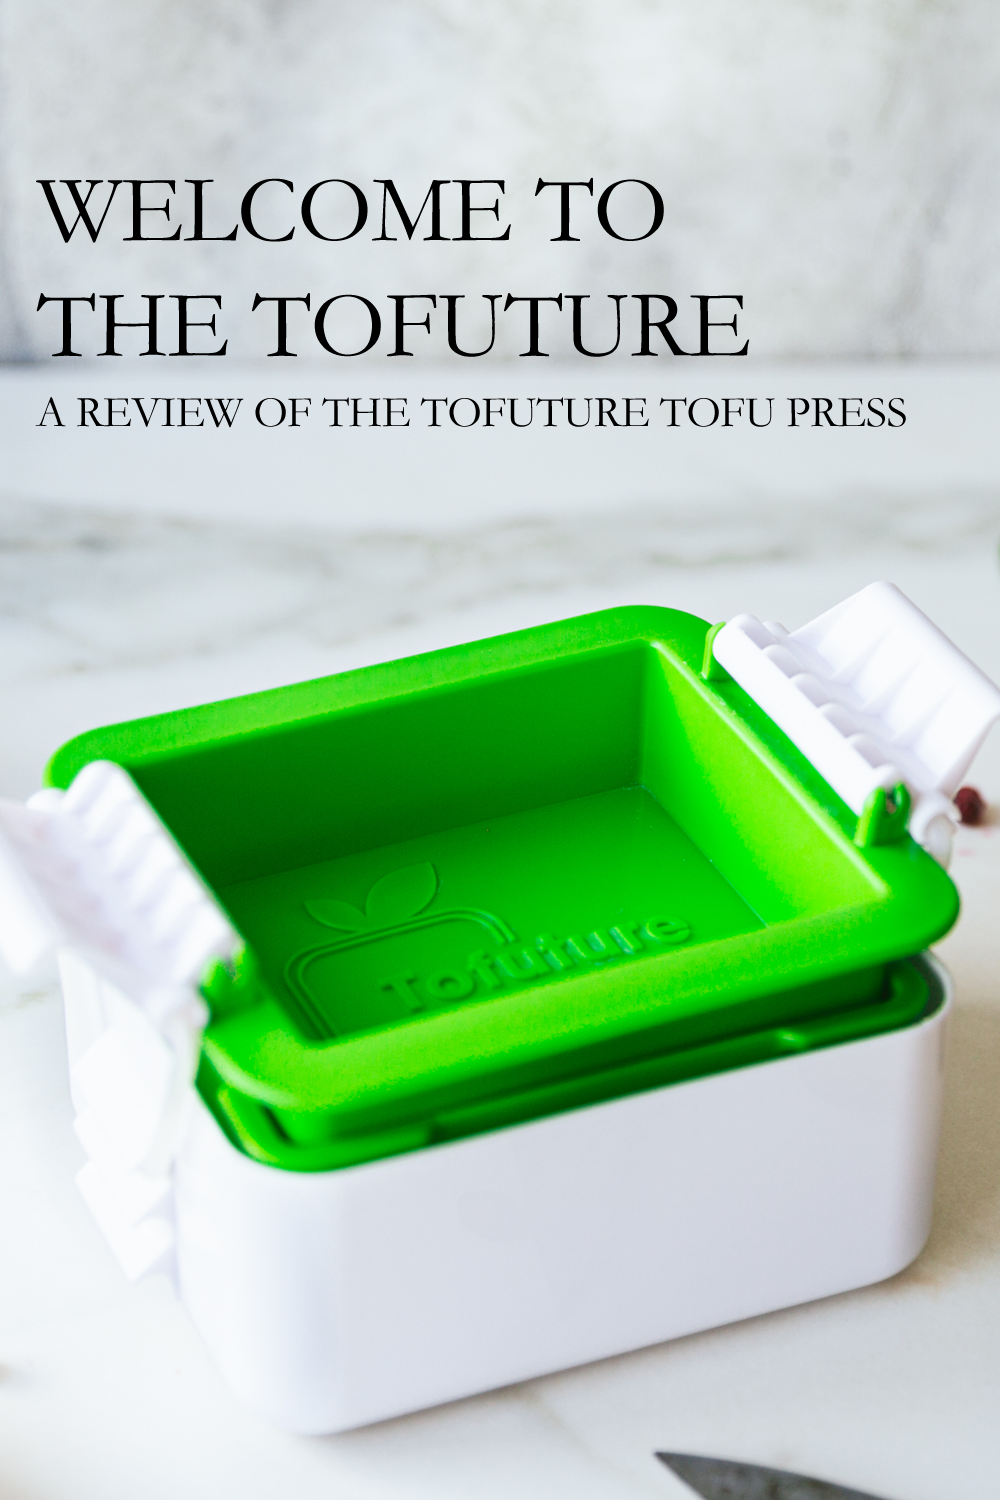 Tofuture tofu press with fruits and vegetables scattered around it.